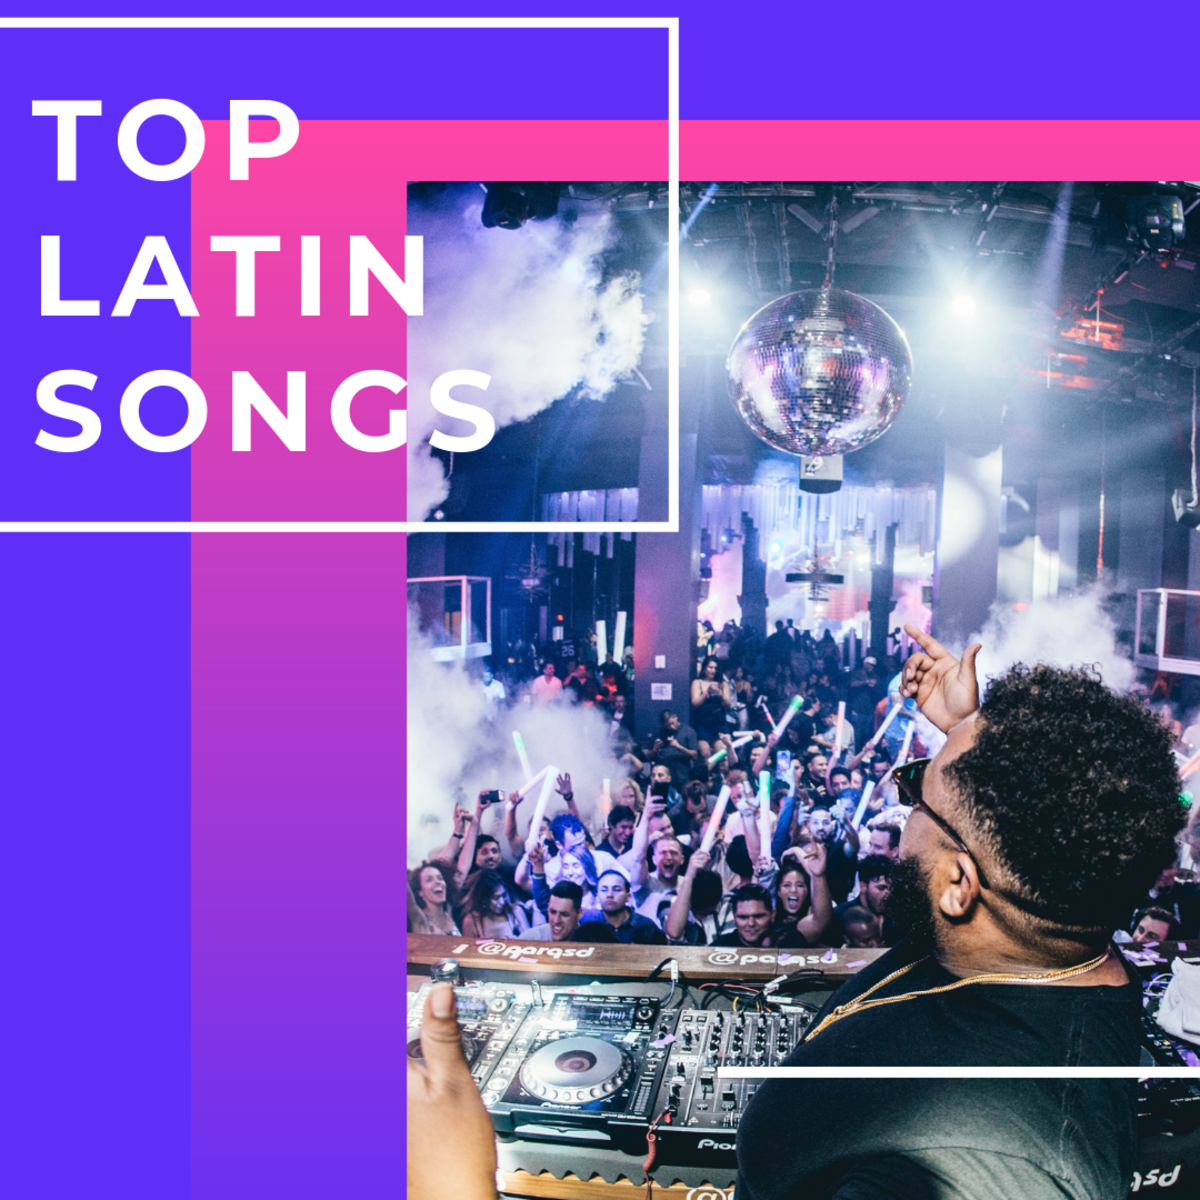 15 Hottest Spanish Songs: The Best Latin Pop Playlist of